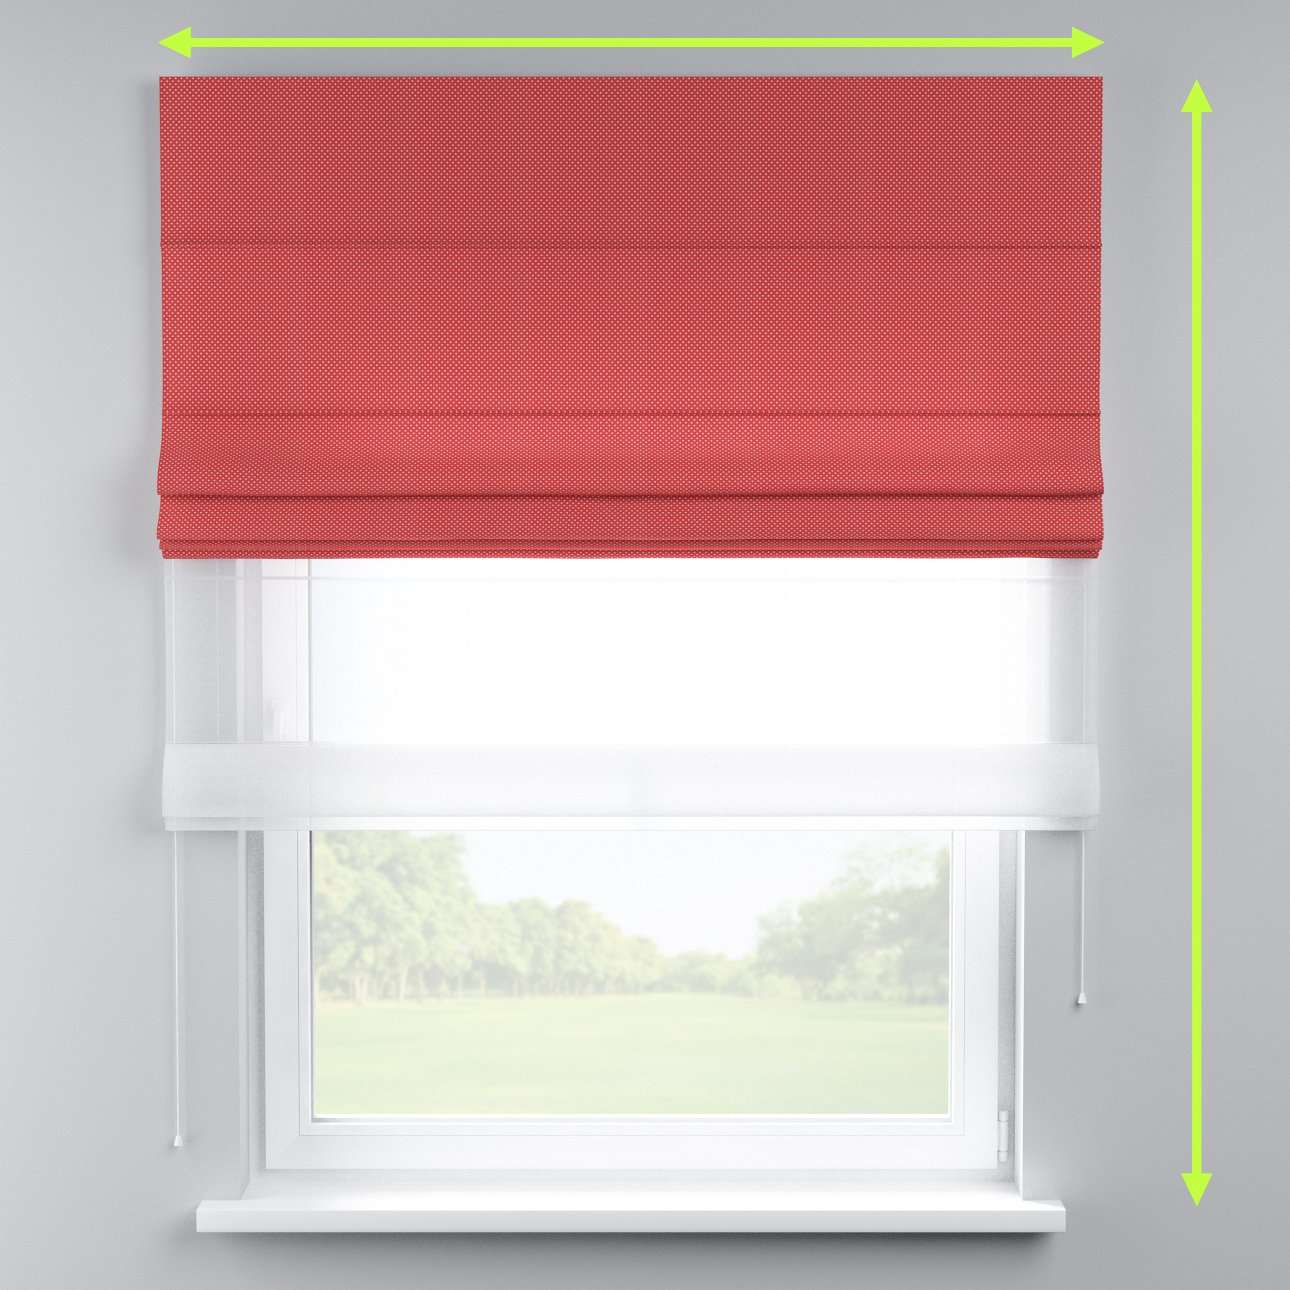 Voile and fabric roman blind (DUO II) in collection Ashley, fabric: 137-50